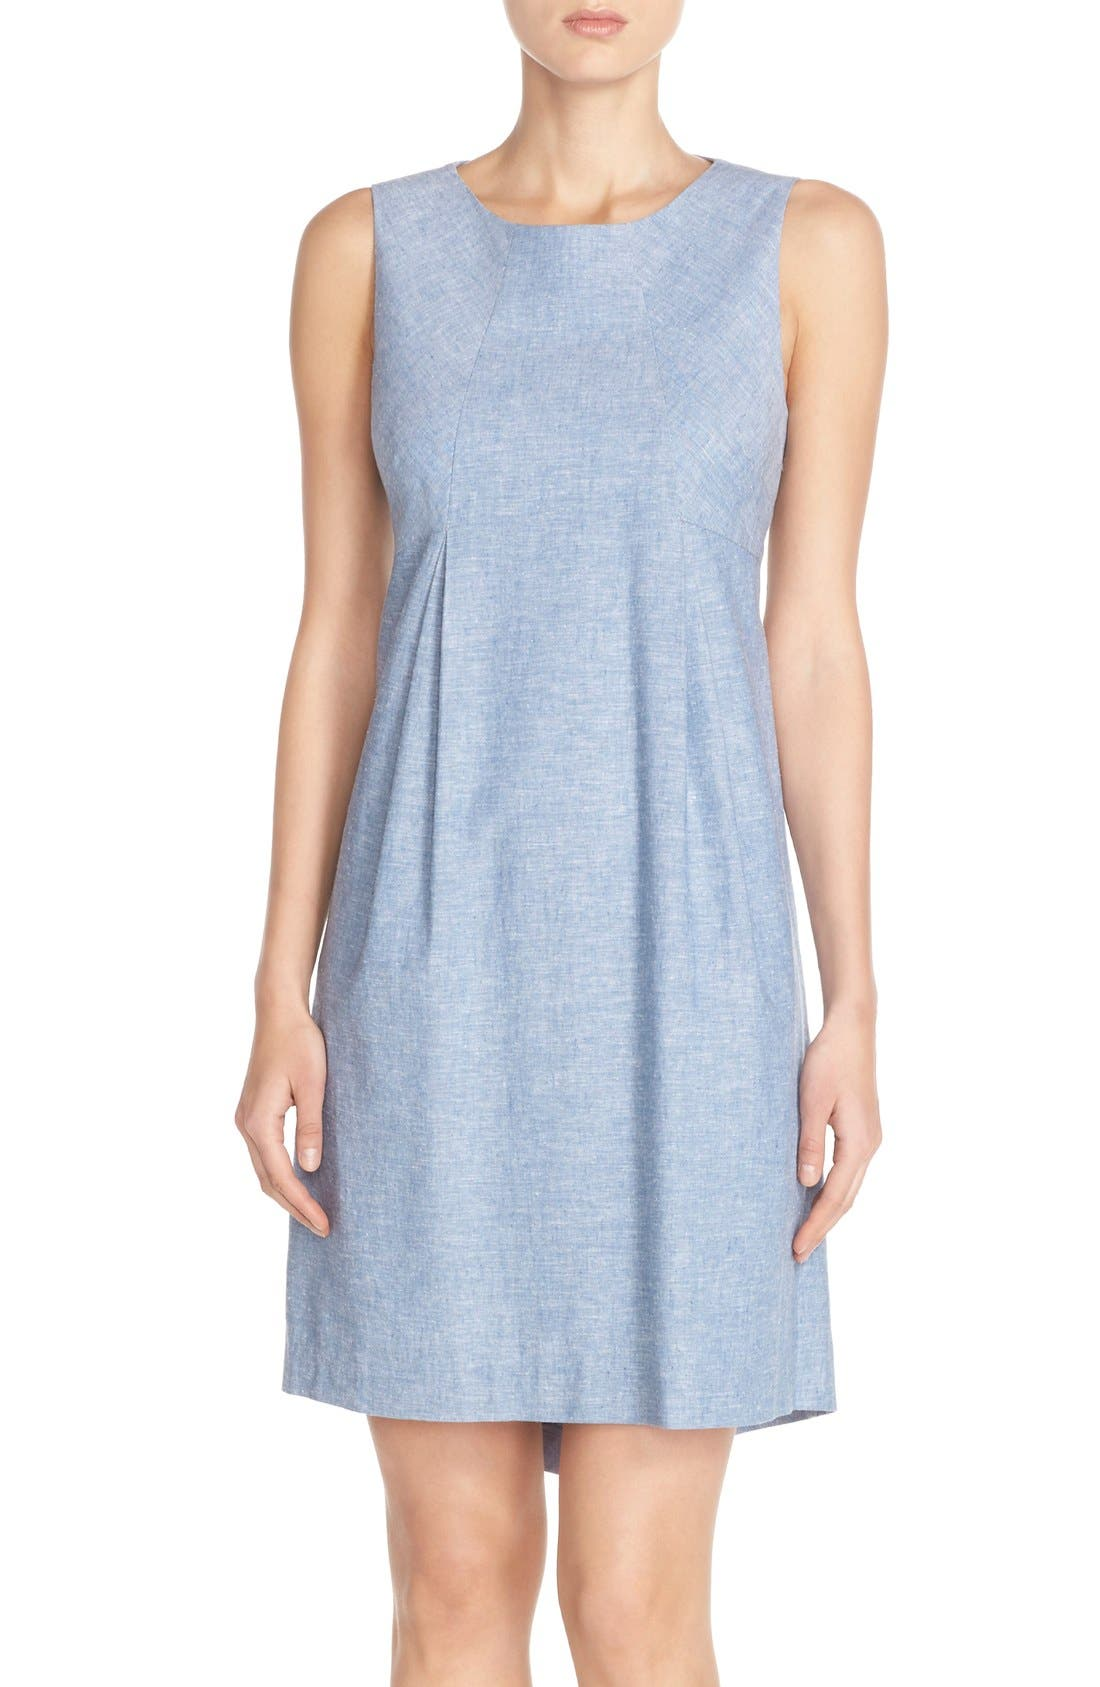 Alternate Image 1 Selected - Donna Morgan Chambray Trapeze Dress